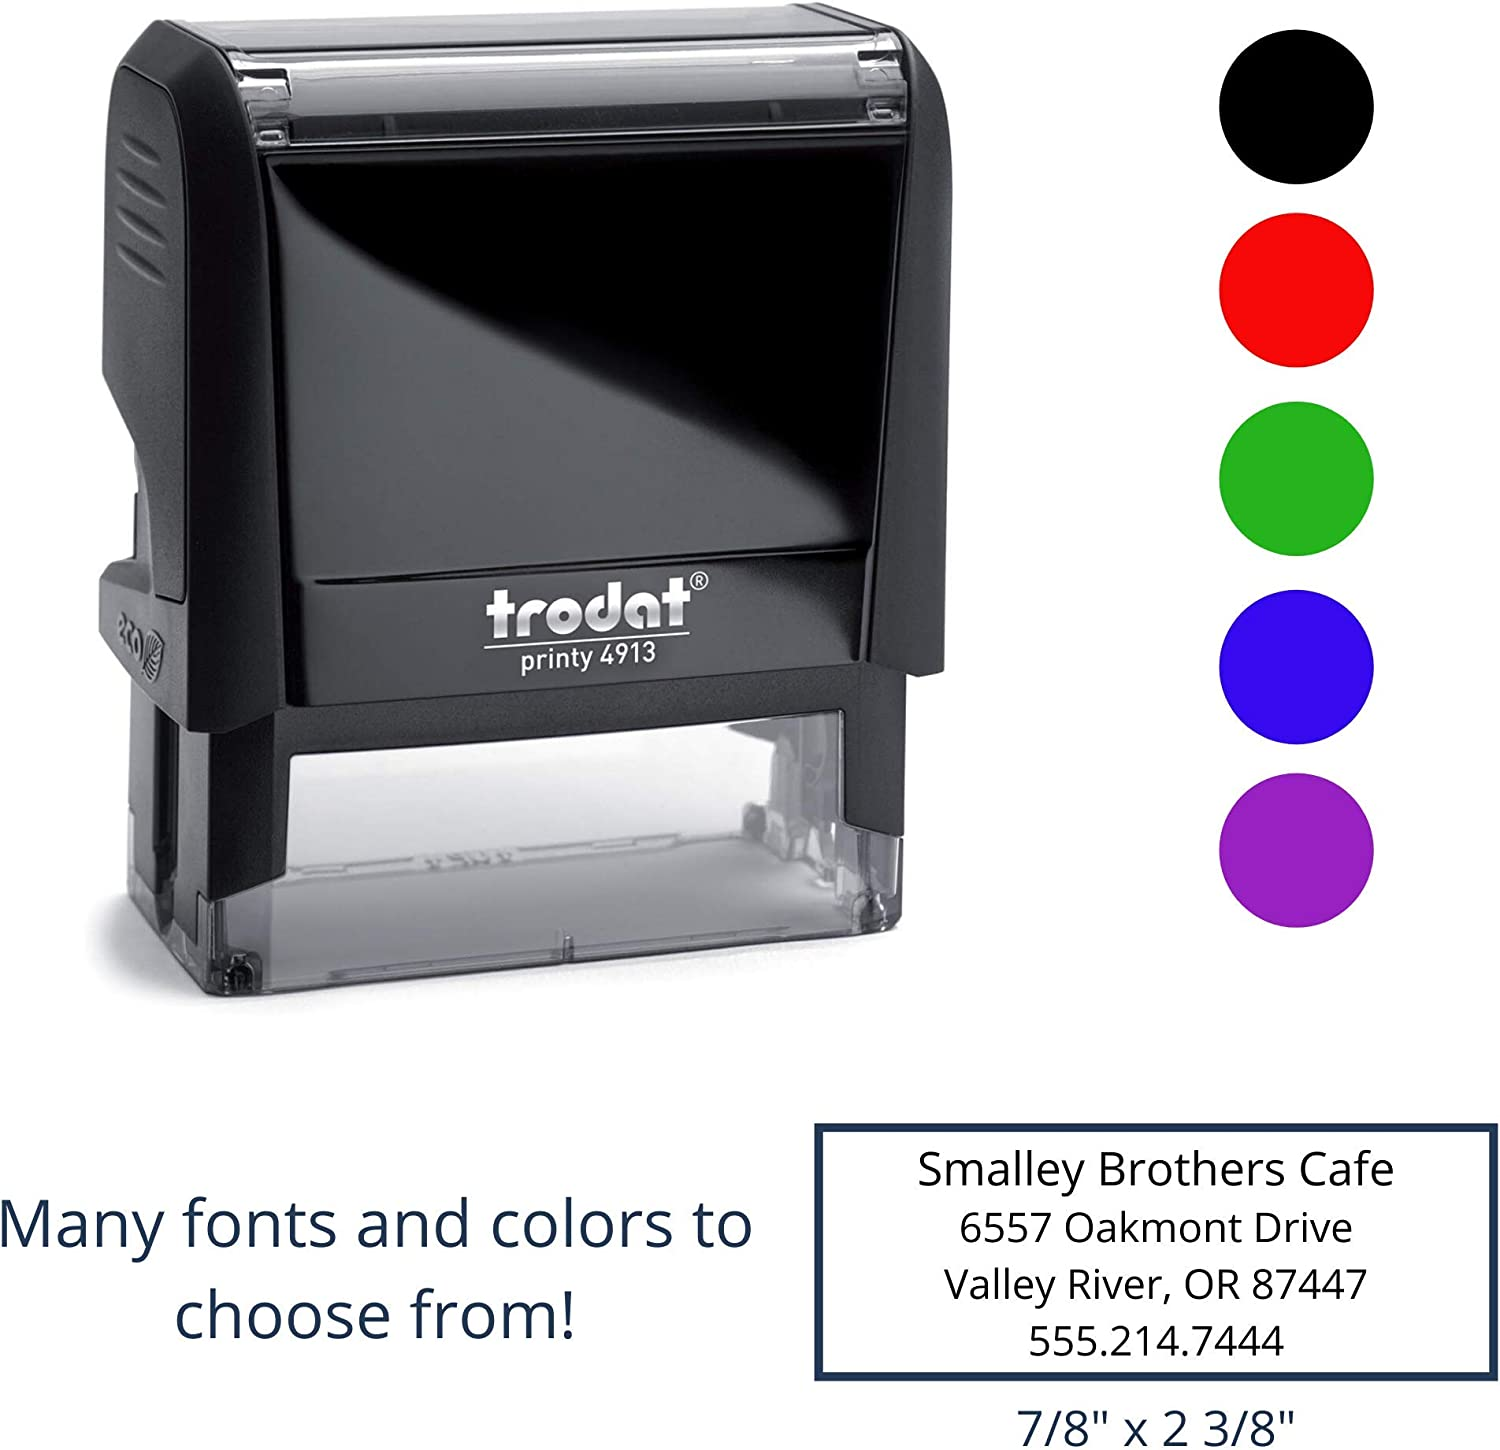 up to 4 Lines with 15 Font and 5 Color Options 7//8 x 2-3//8 Medium Personalized Custom Self Inking Rubber Stamp